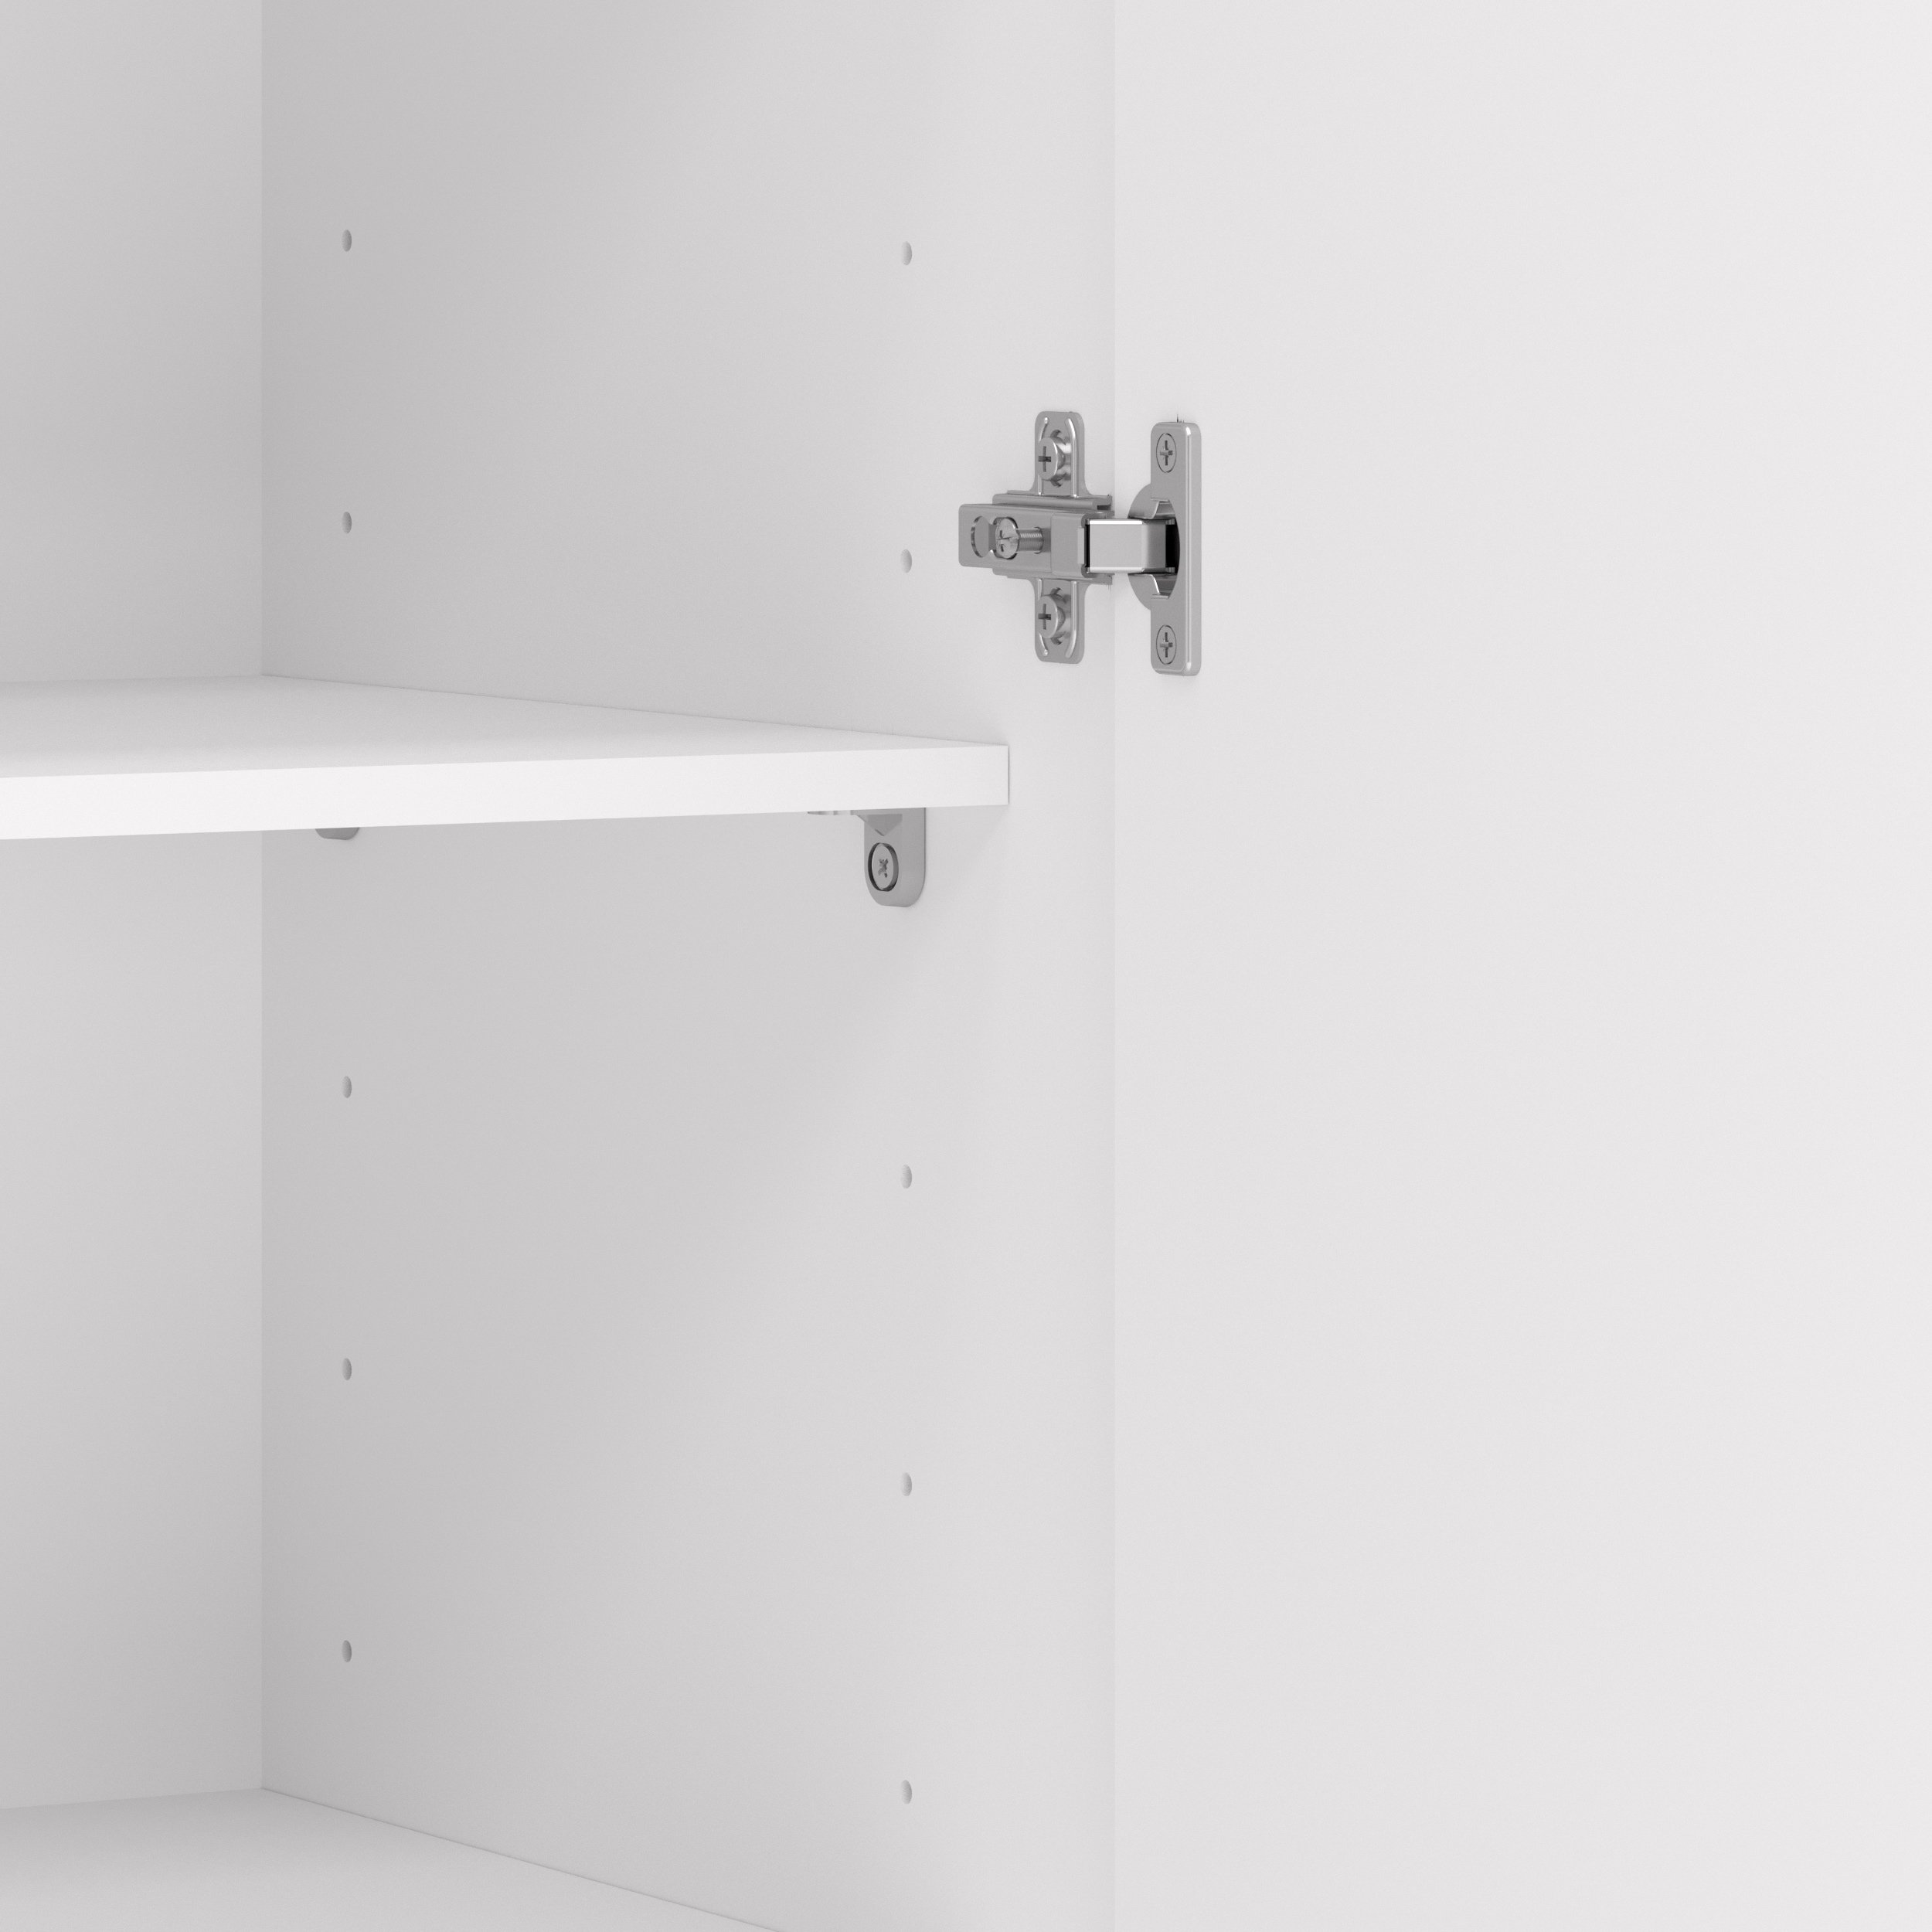 Tvilum 704174949 Space Wardrobe with with 2 Doors, White by Tvilum (Image #3)